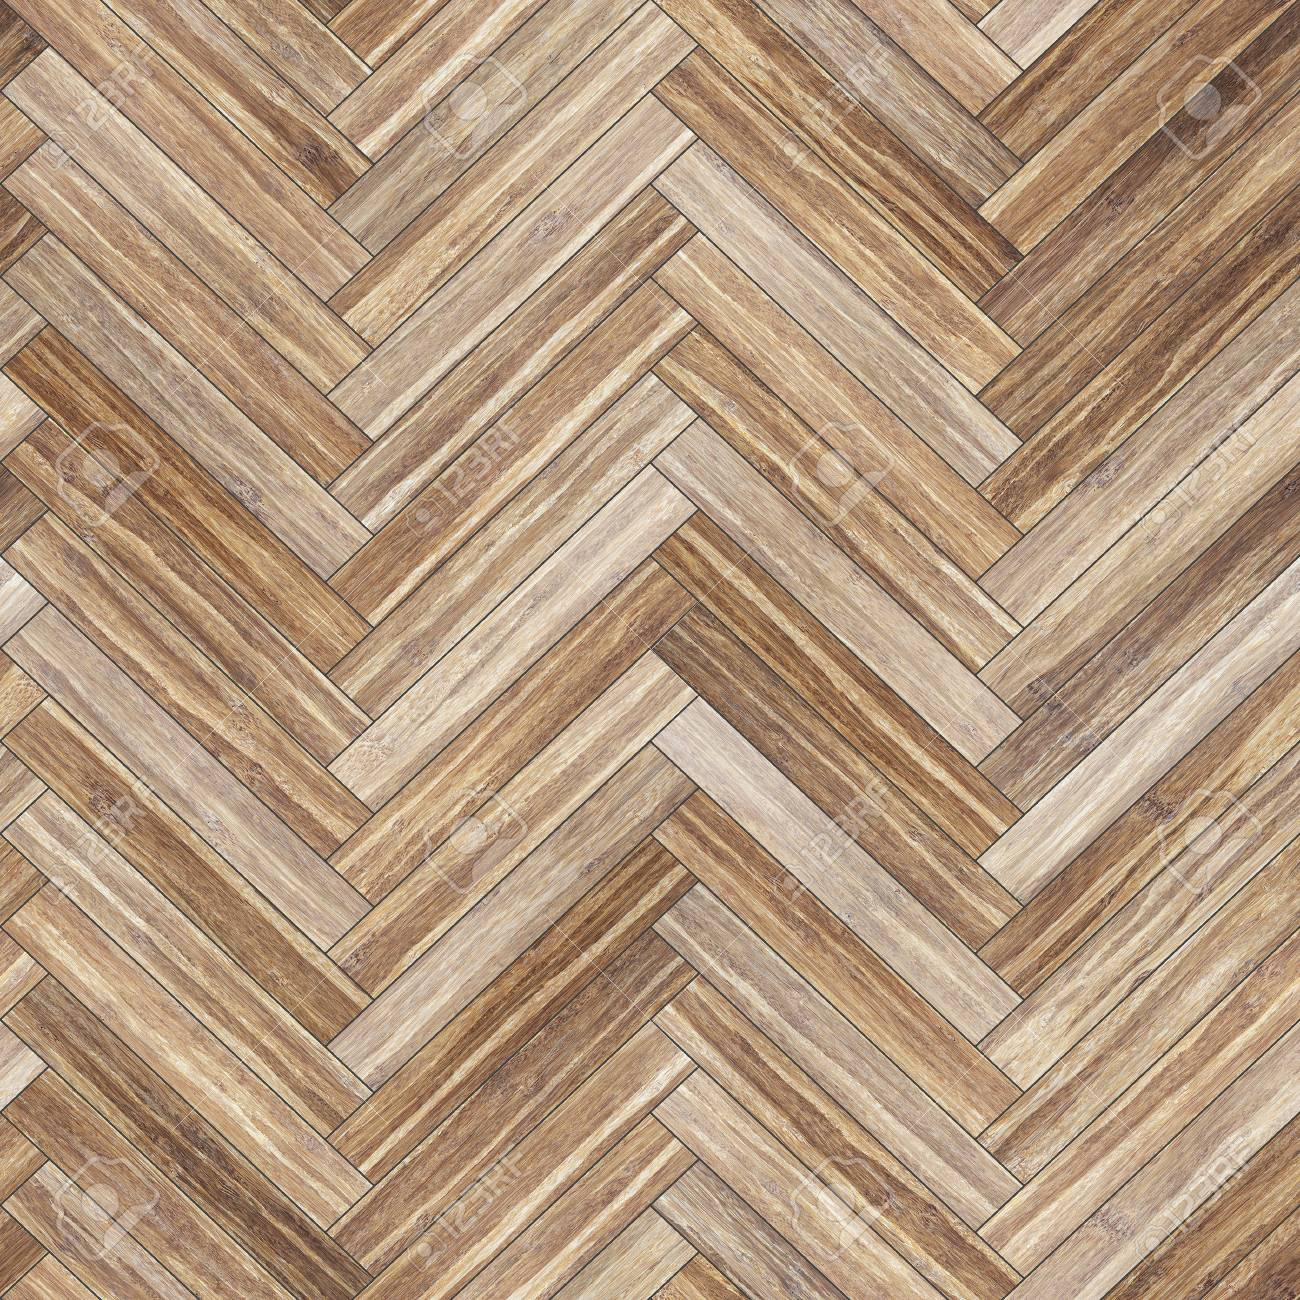 Pavimento Legno Spina Di Pesce seamless wood parquet texture (herringbone light brown)